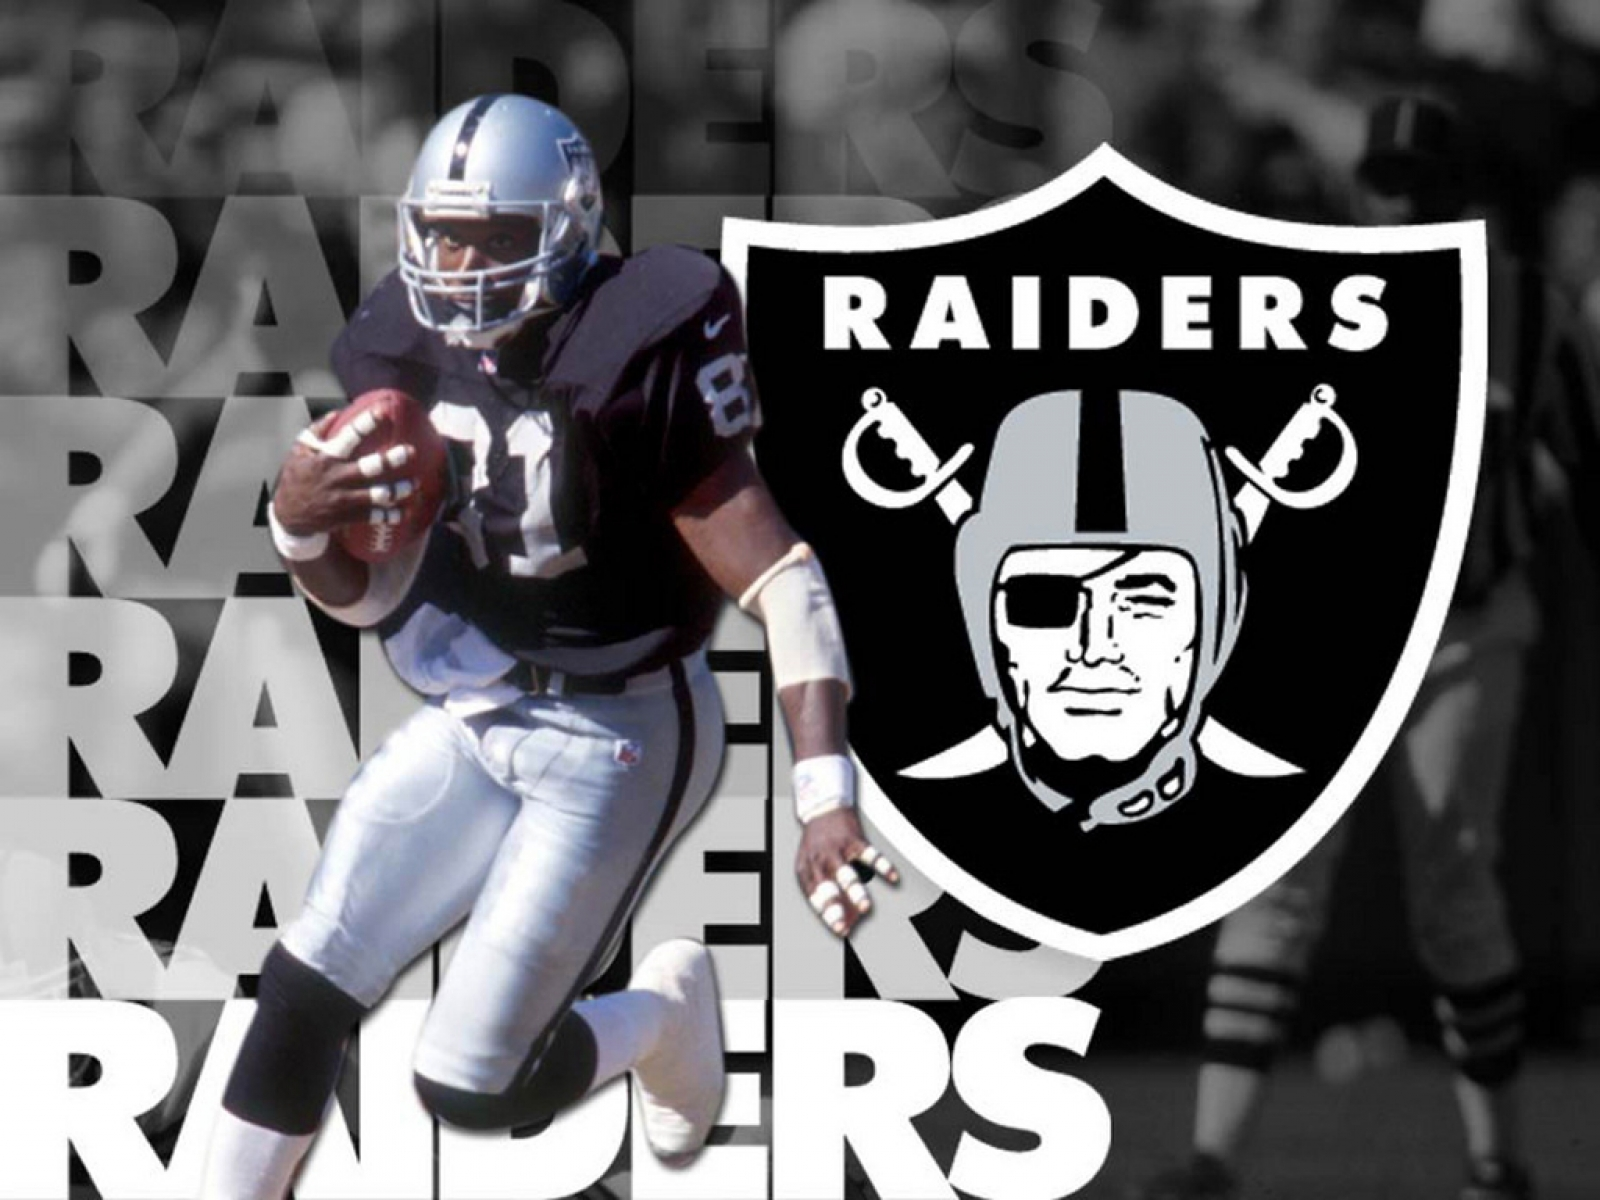 OAKLAND RAIDERS nfl football k wallpaper | 1600x1200 ...